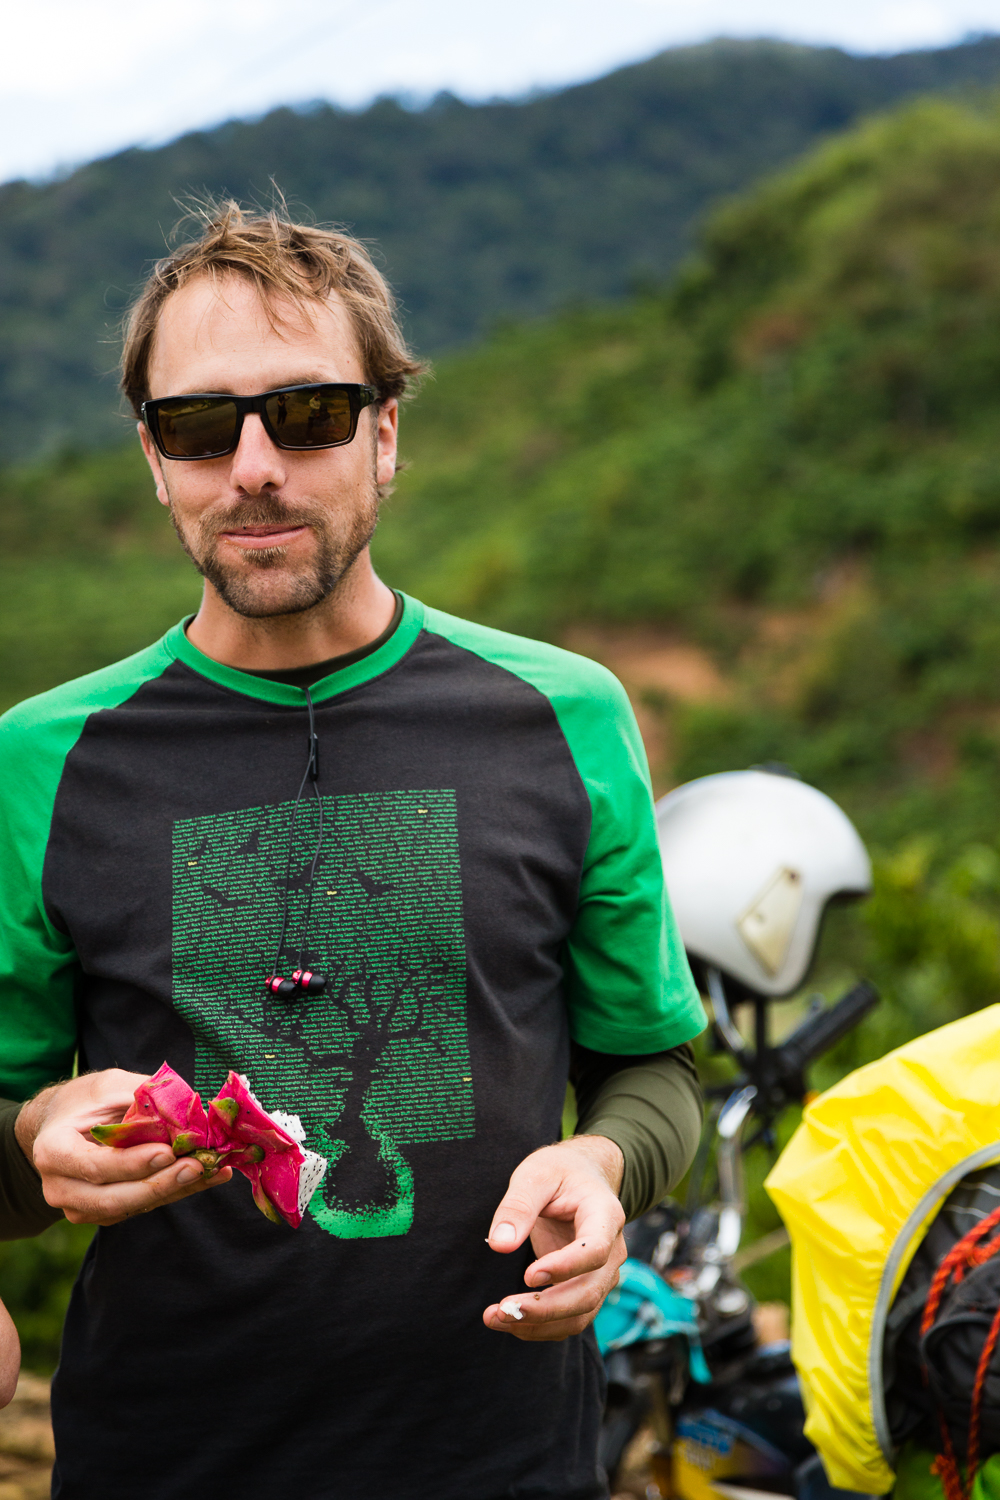 adventure-photography-motorcycle-vietnam-becky-brockie-dragon-fruit.jpg